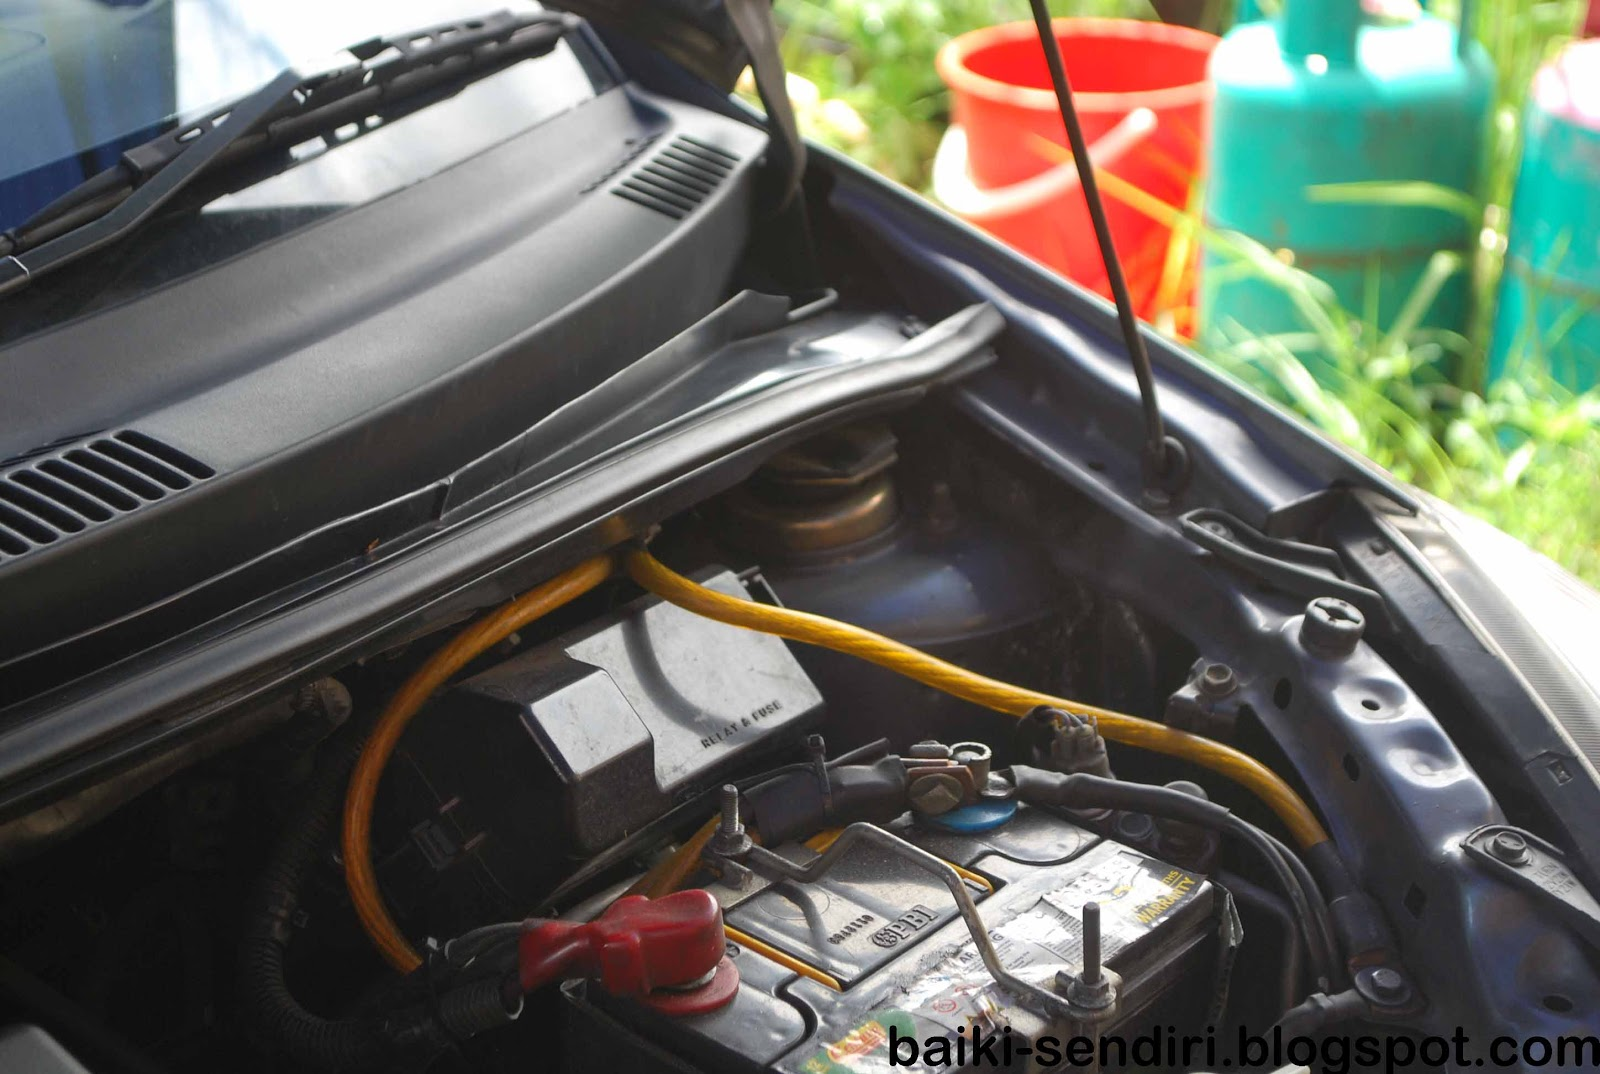 DIY: Fix On Your Own: Replacing Myvi Absorber Top Mounting